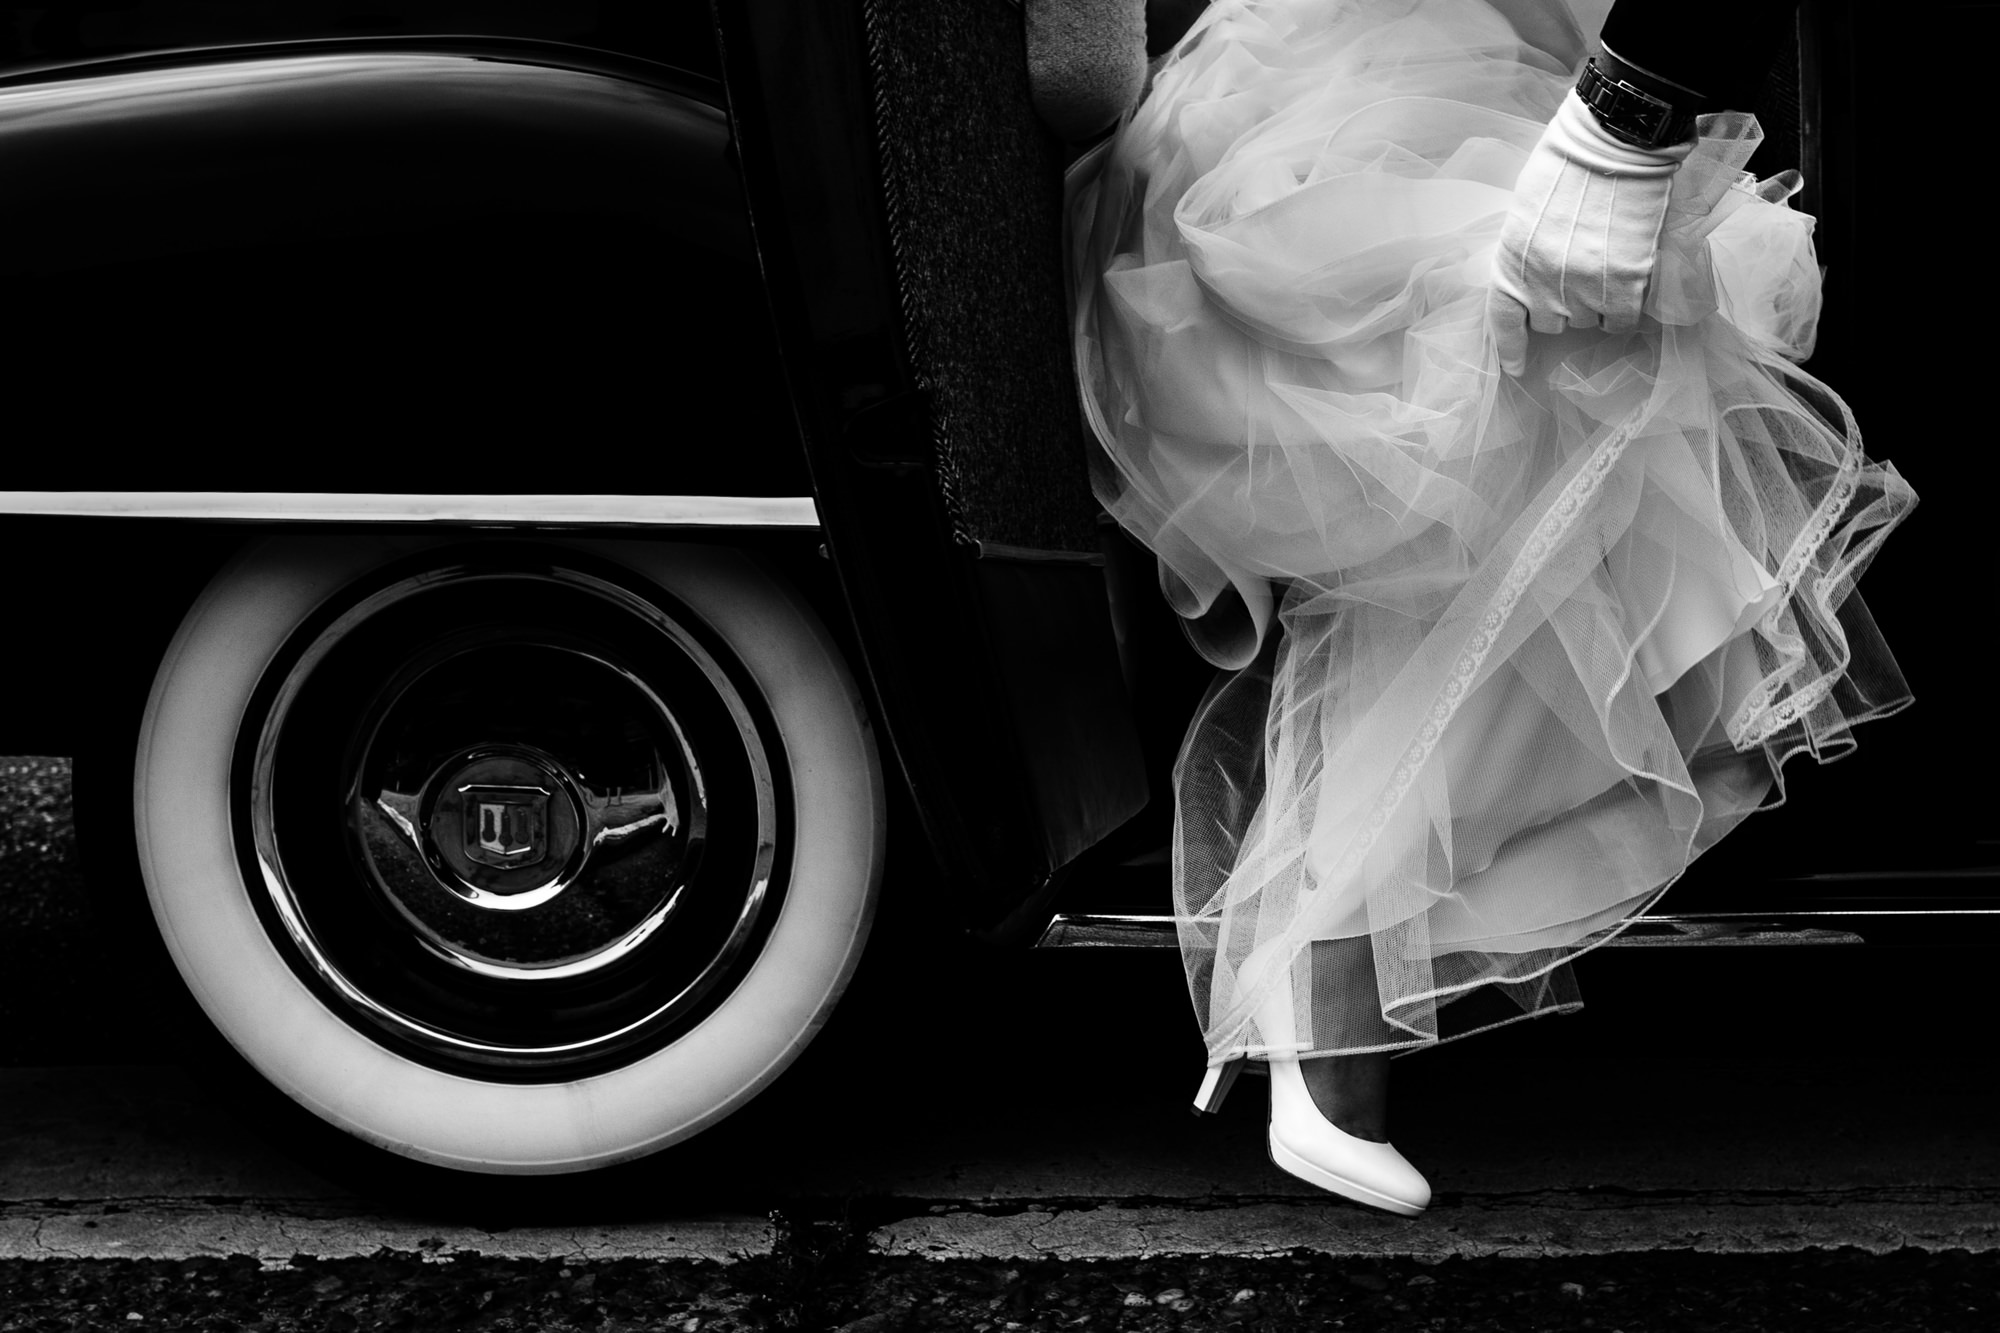 Bride in ruffled dress gets out of Antique car photo by Yves Schepers